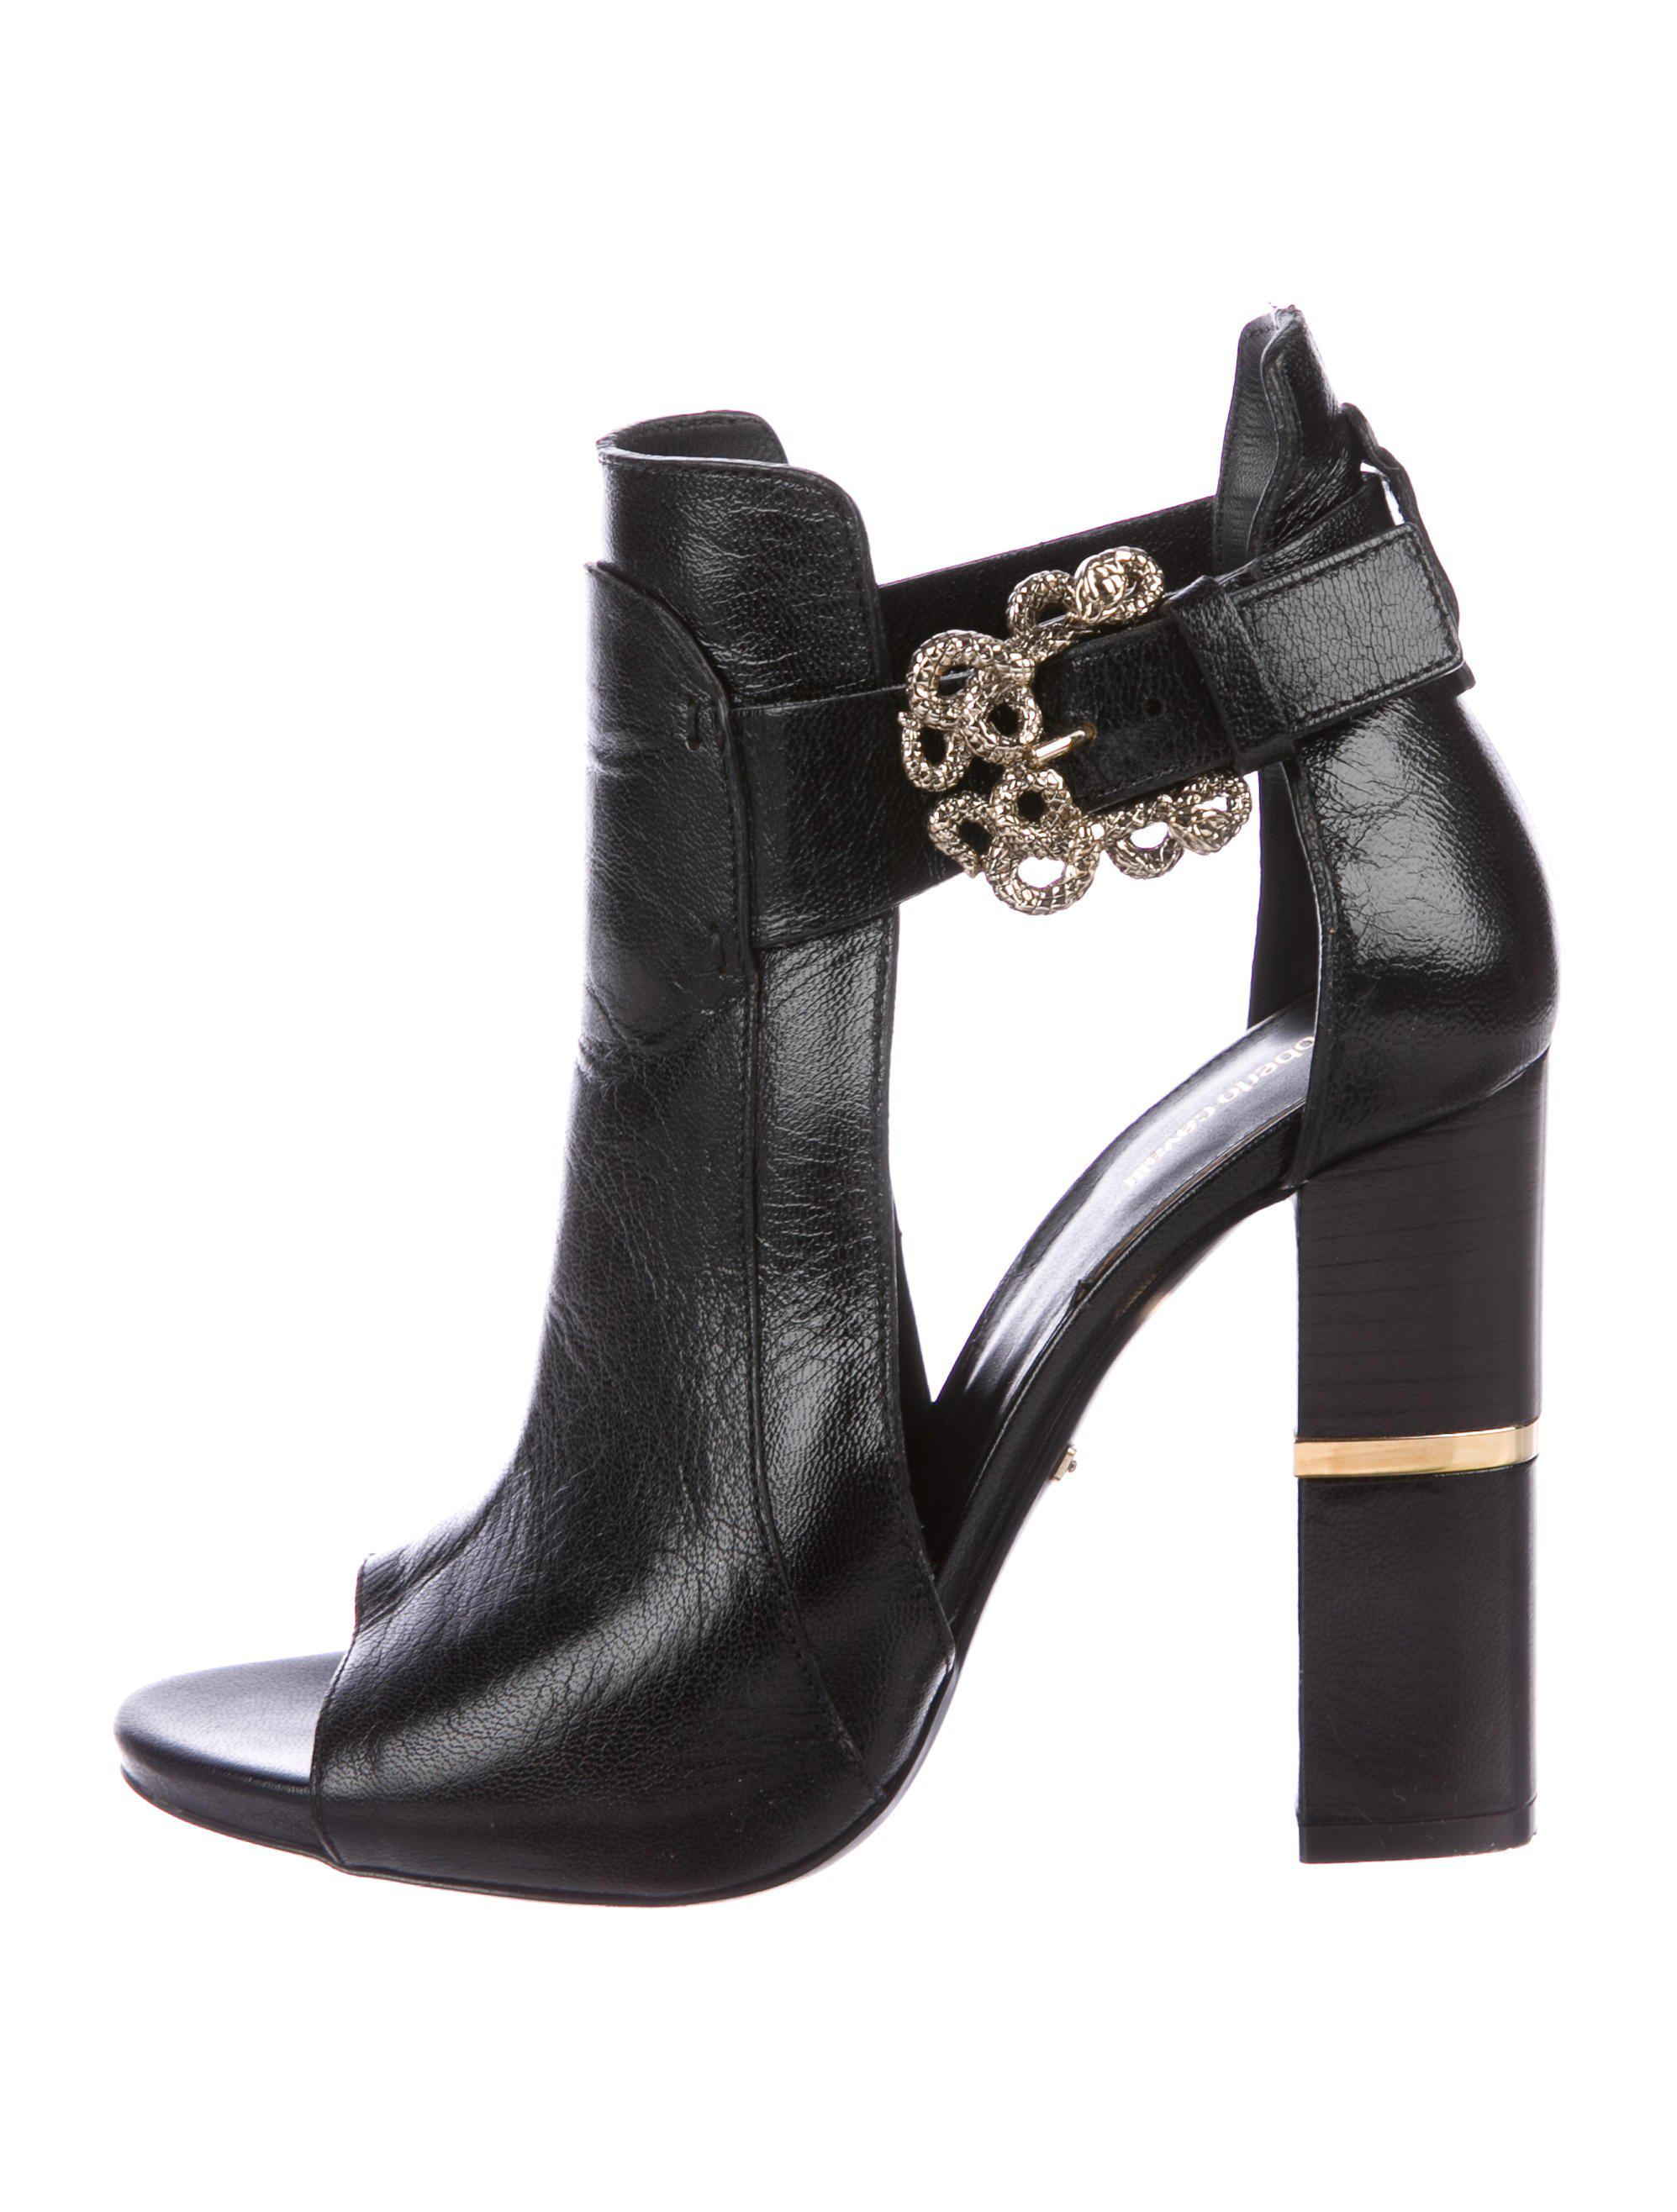 Roberto Cavalli Leather Cutout Booties clearance best clearance hot sale buy cheap cost latest collections cheap price outlet locations online CAkXyfr